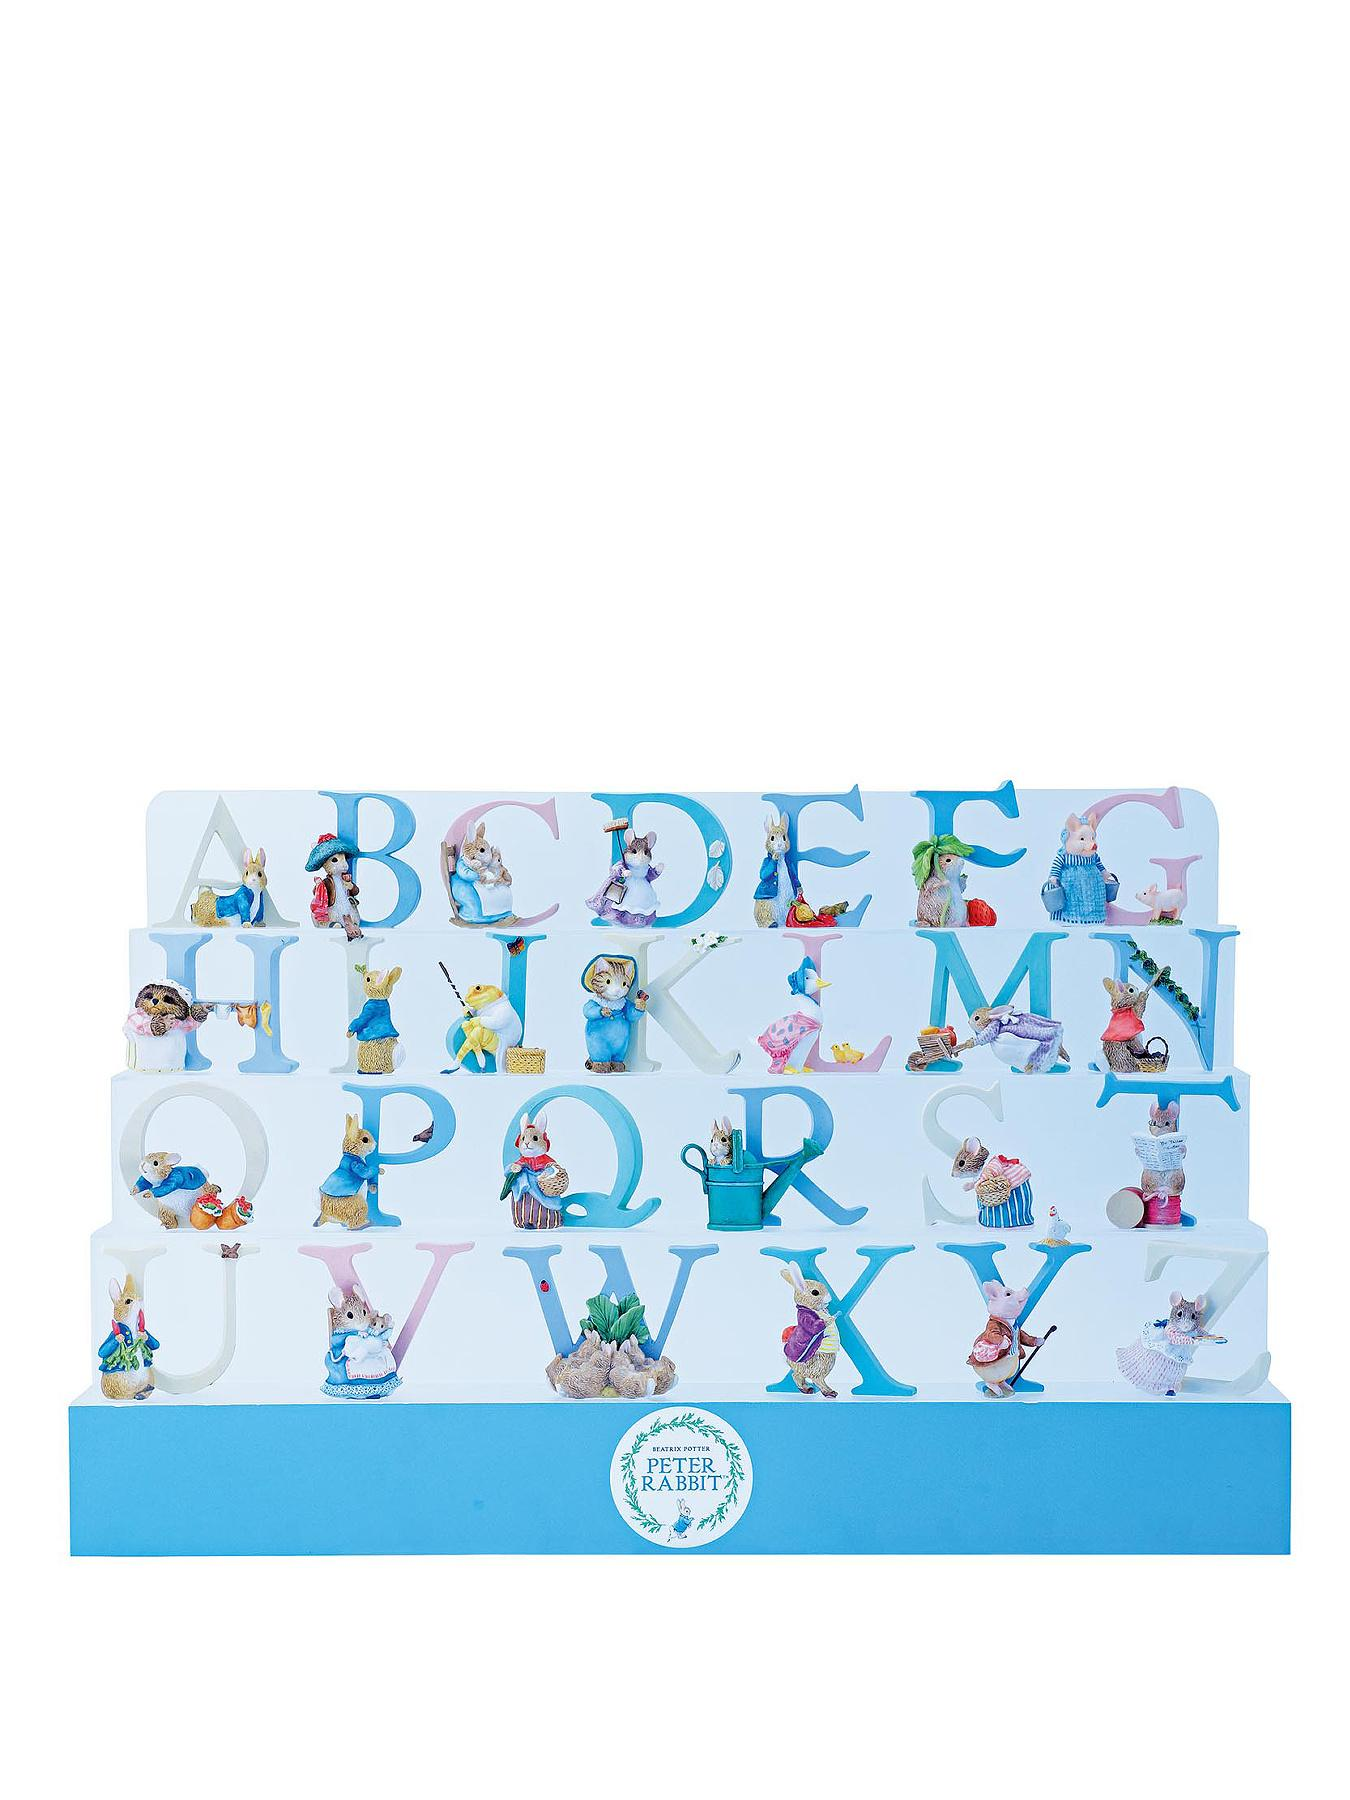 Peter Rabbit Alphabet Resin Letters - A-Z Options